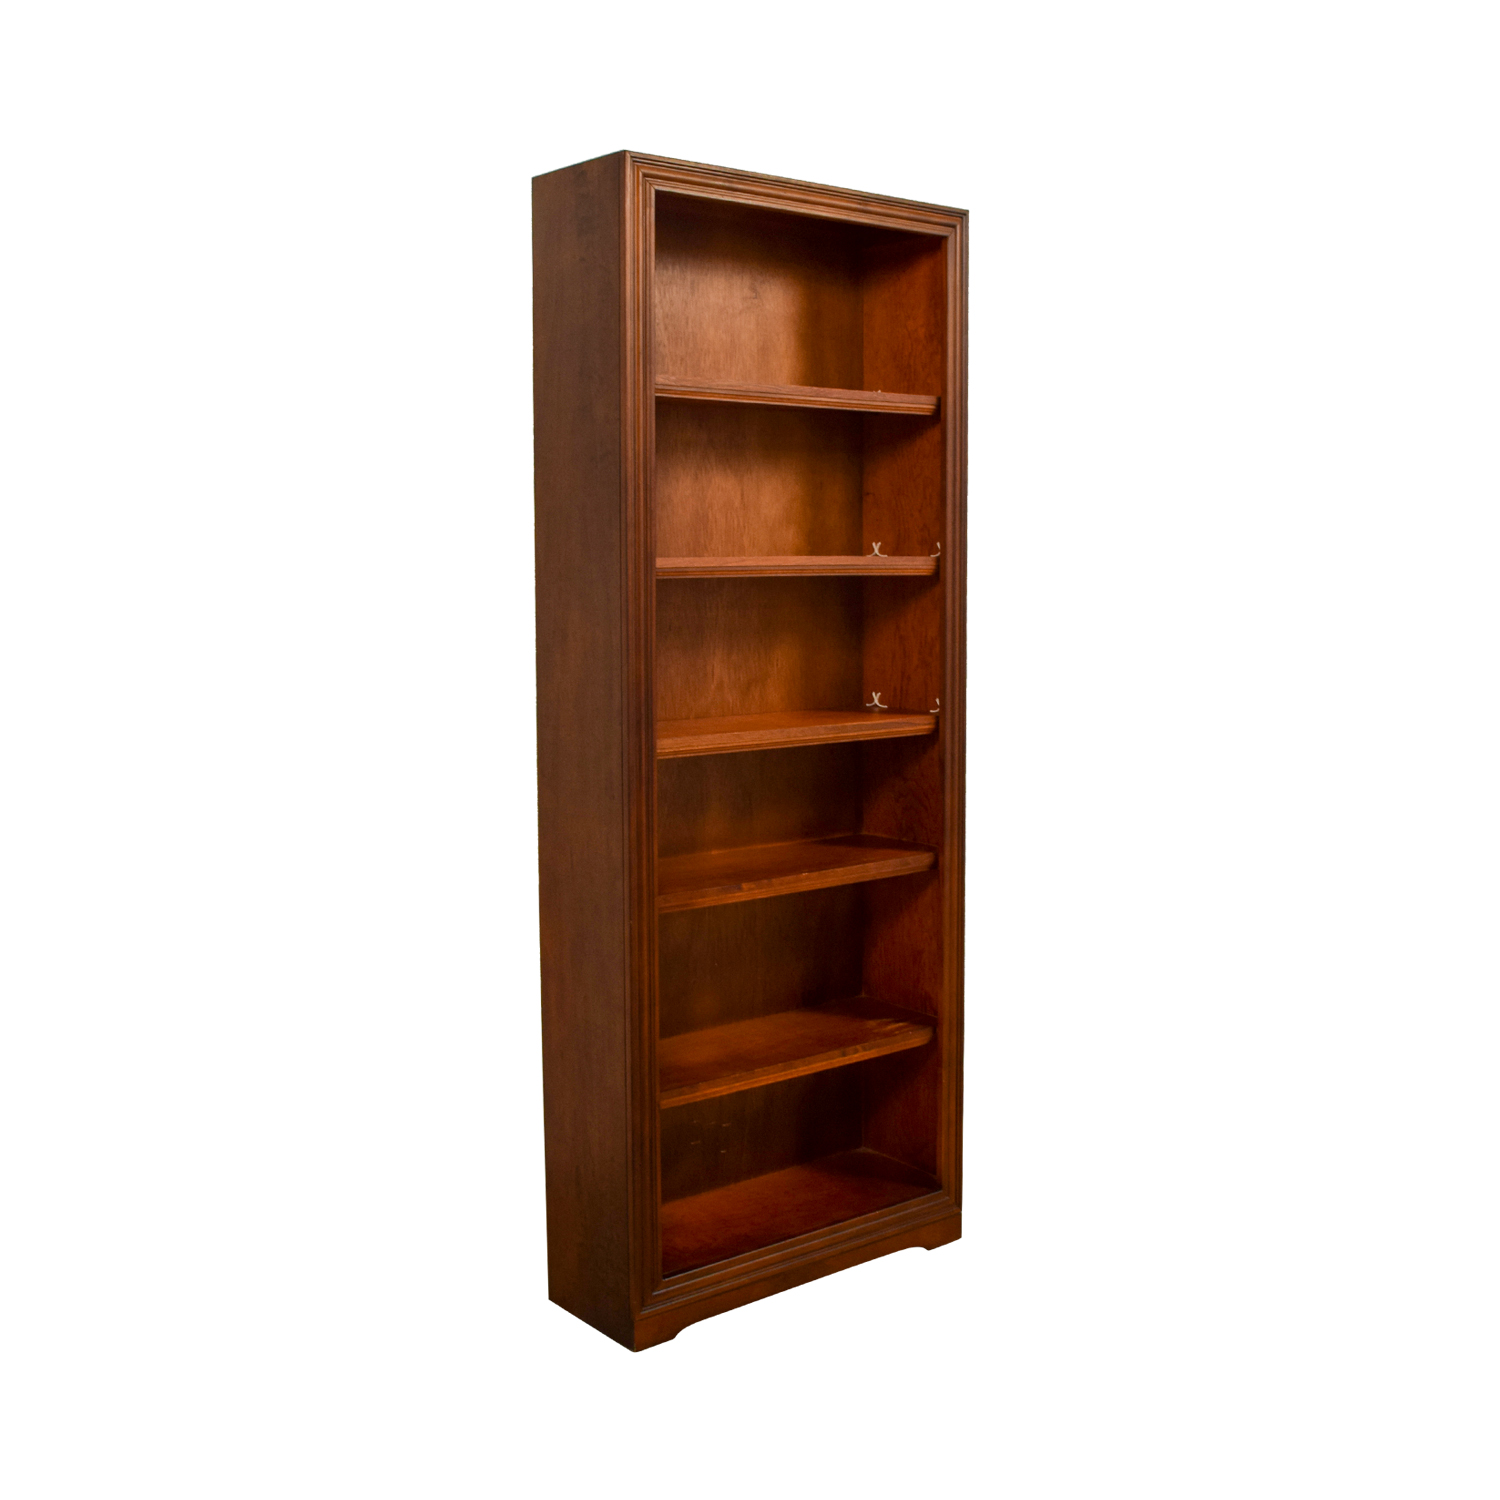 52 Off Tall Wood Bookcase Storage